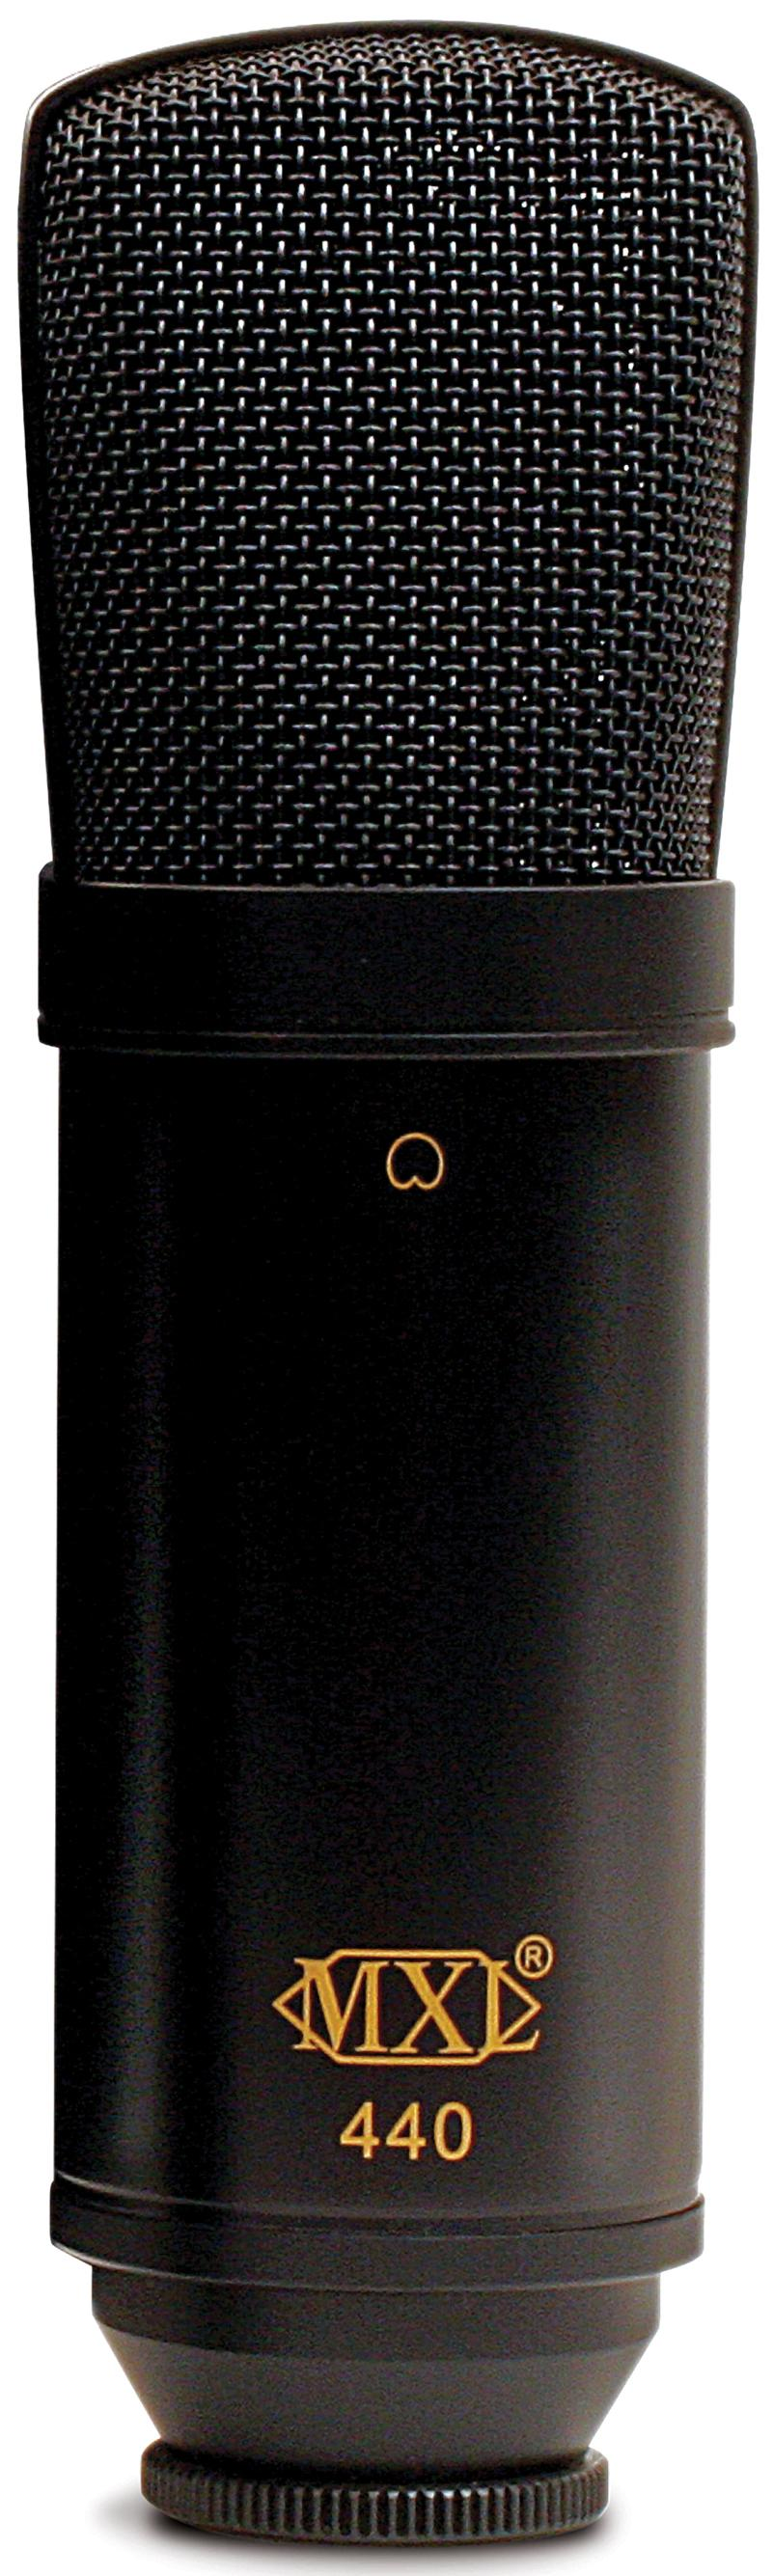 Amazon.com: MXL 440/441 Microphone Ensemble with Carrying Case ...